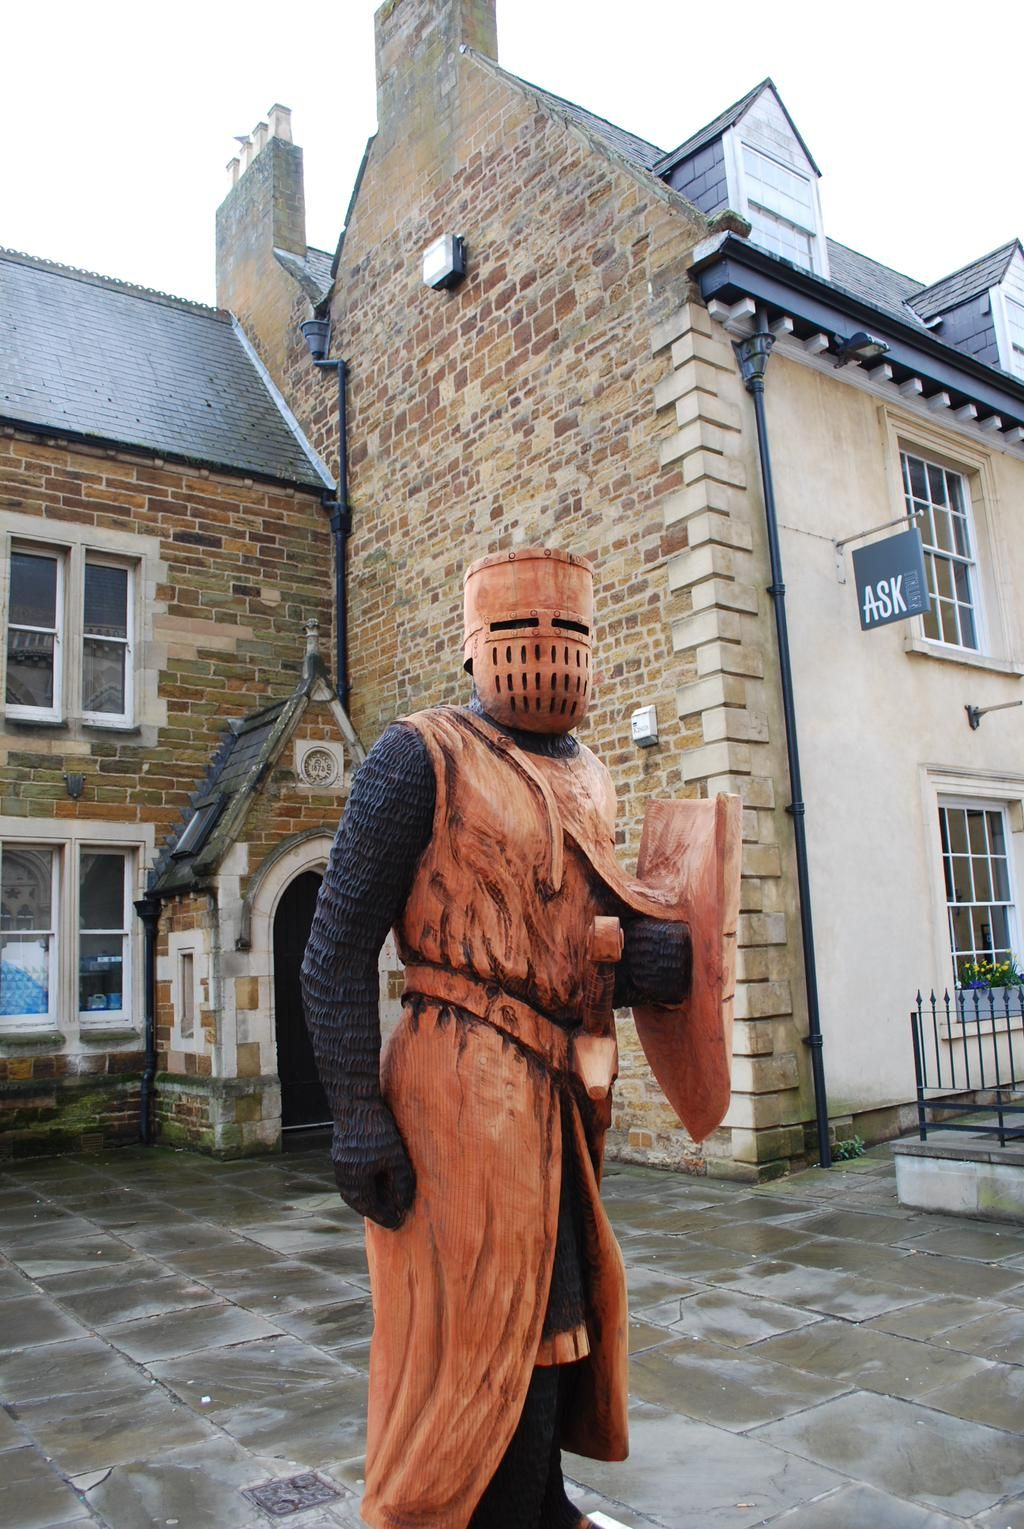 NORTHAMPTON KNIGHTS SCULPTURES IMAGES - Google Search